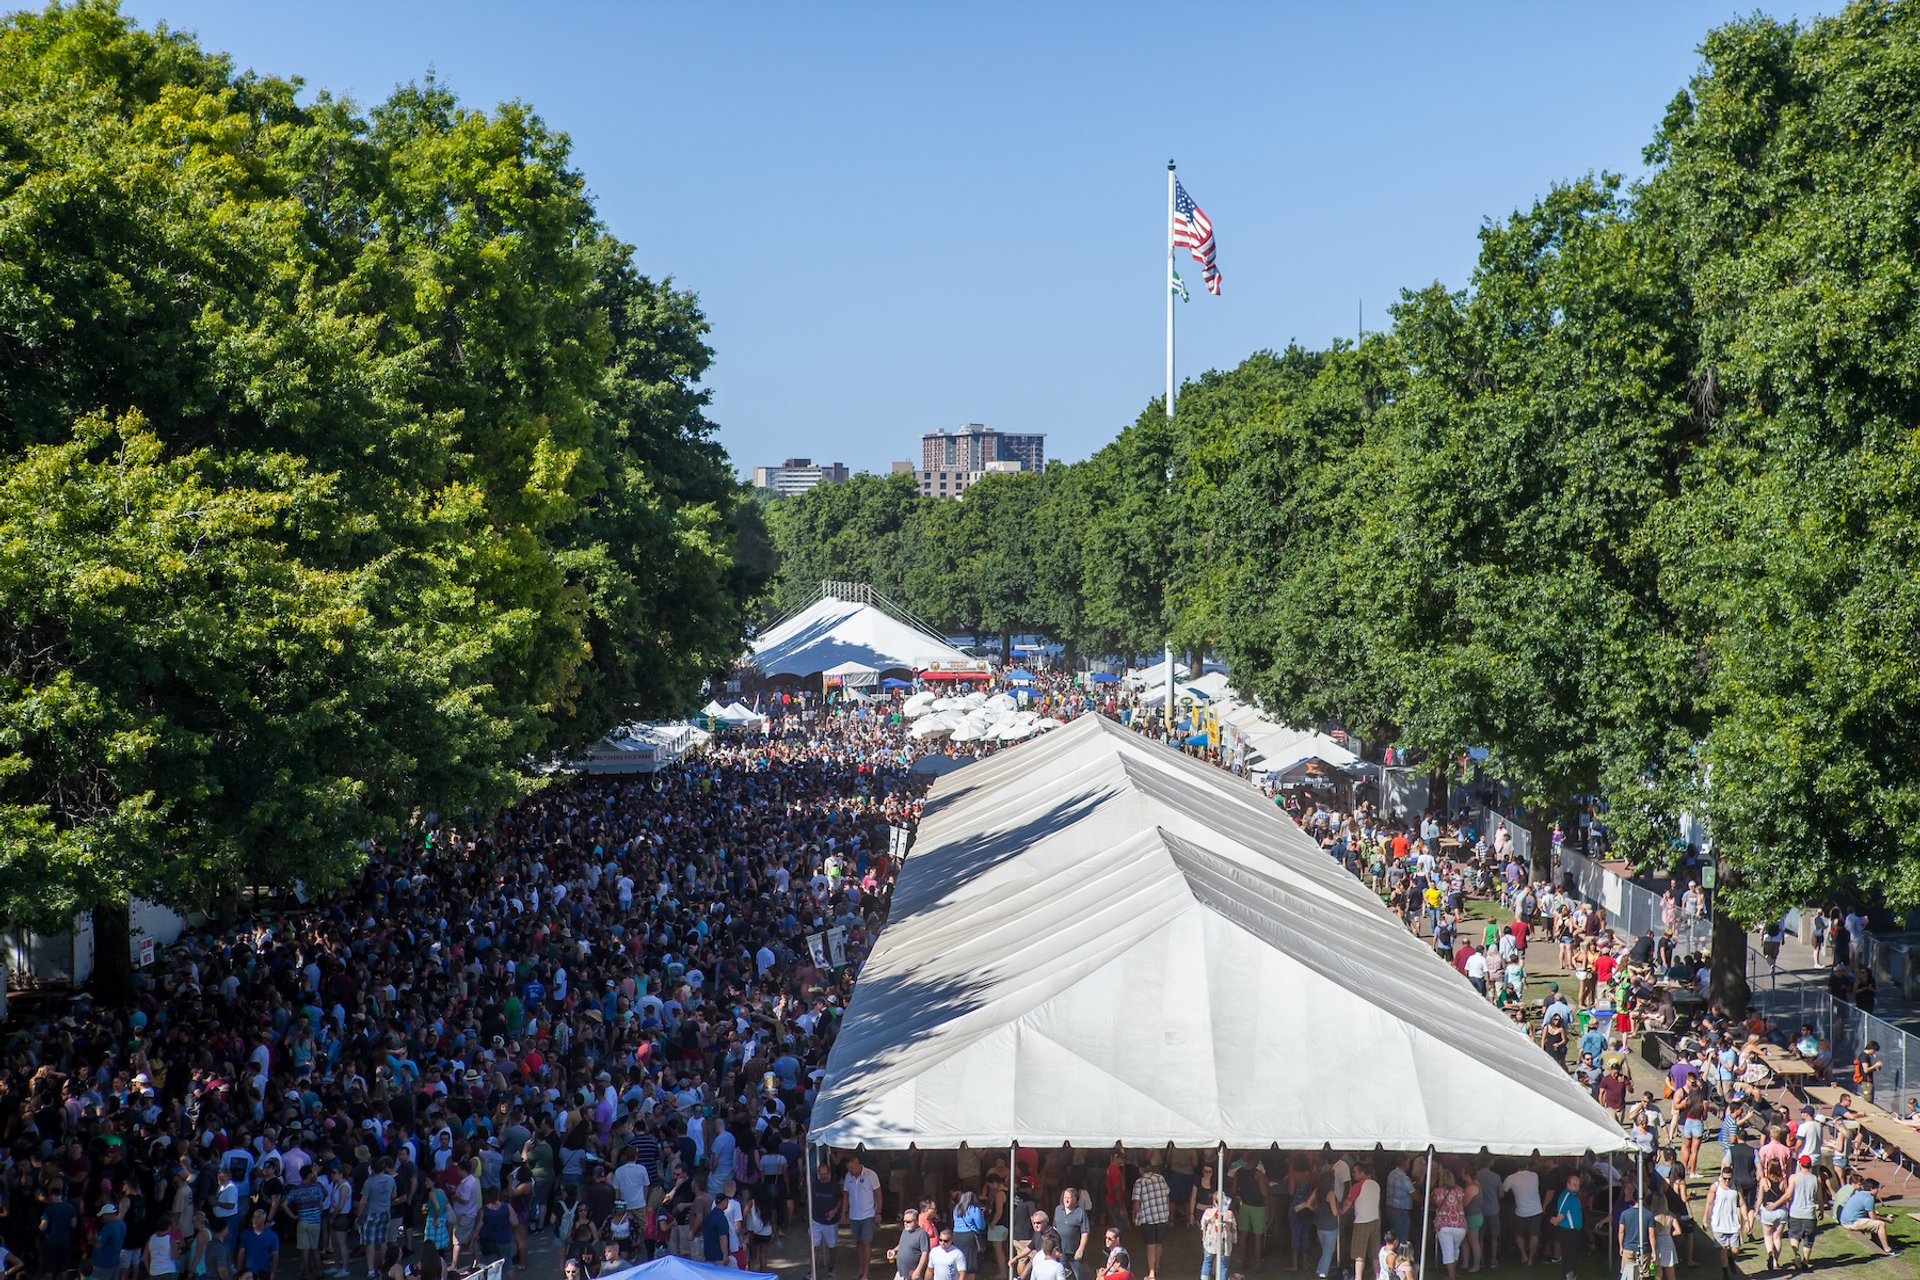 Oregon Brewers Festival in Portland - Best Season 2020